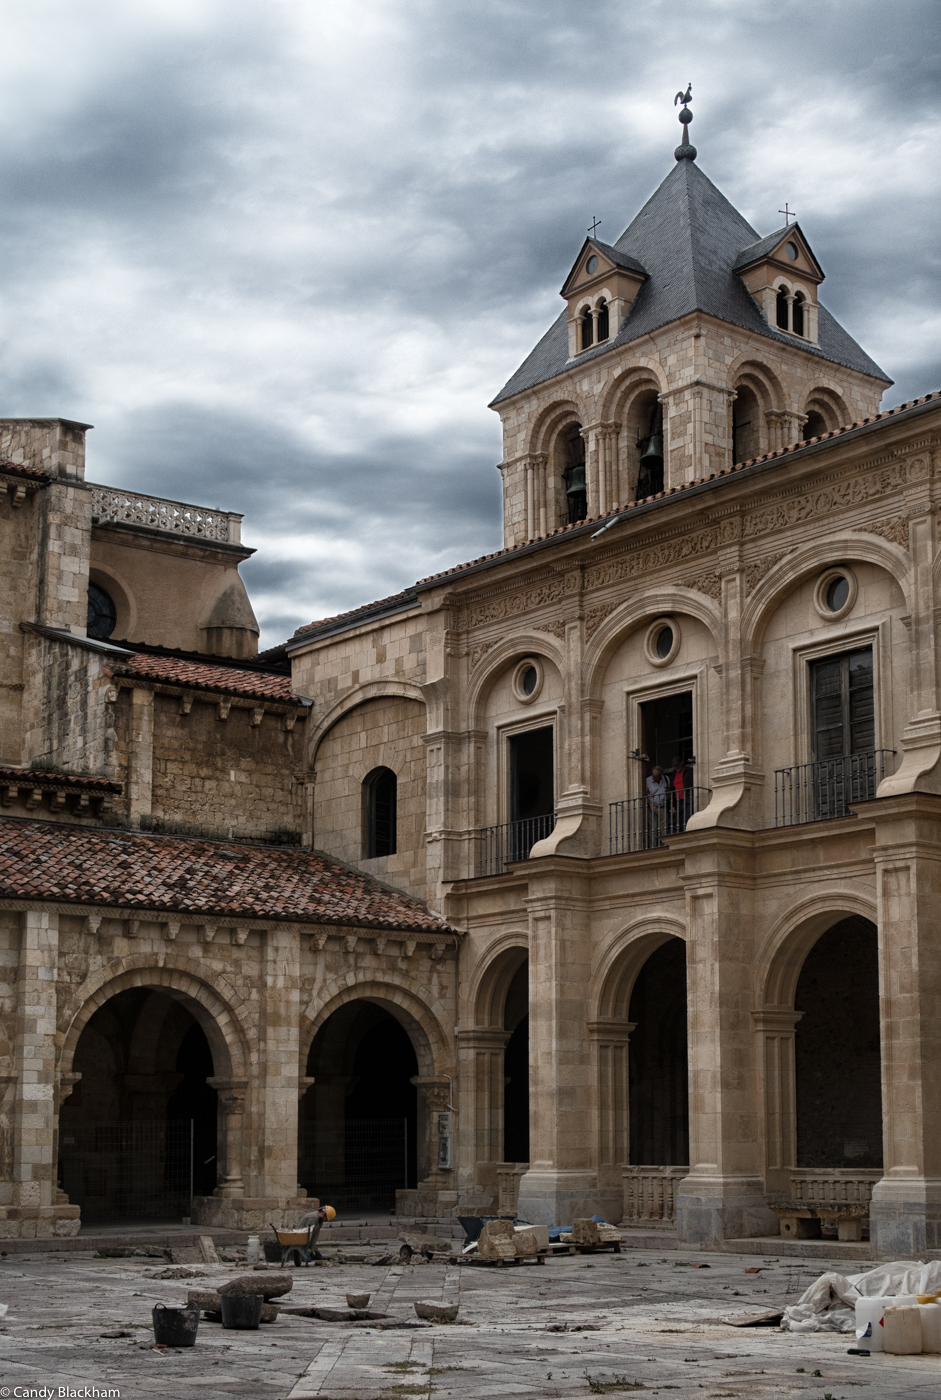 The Cloister of San Isidoro